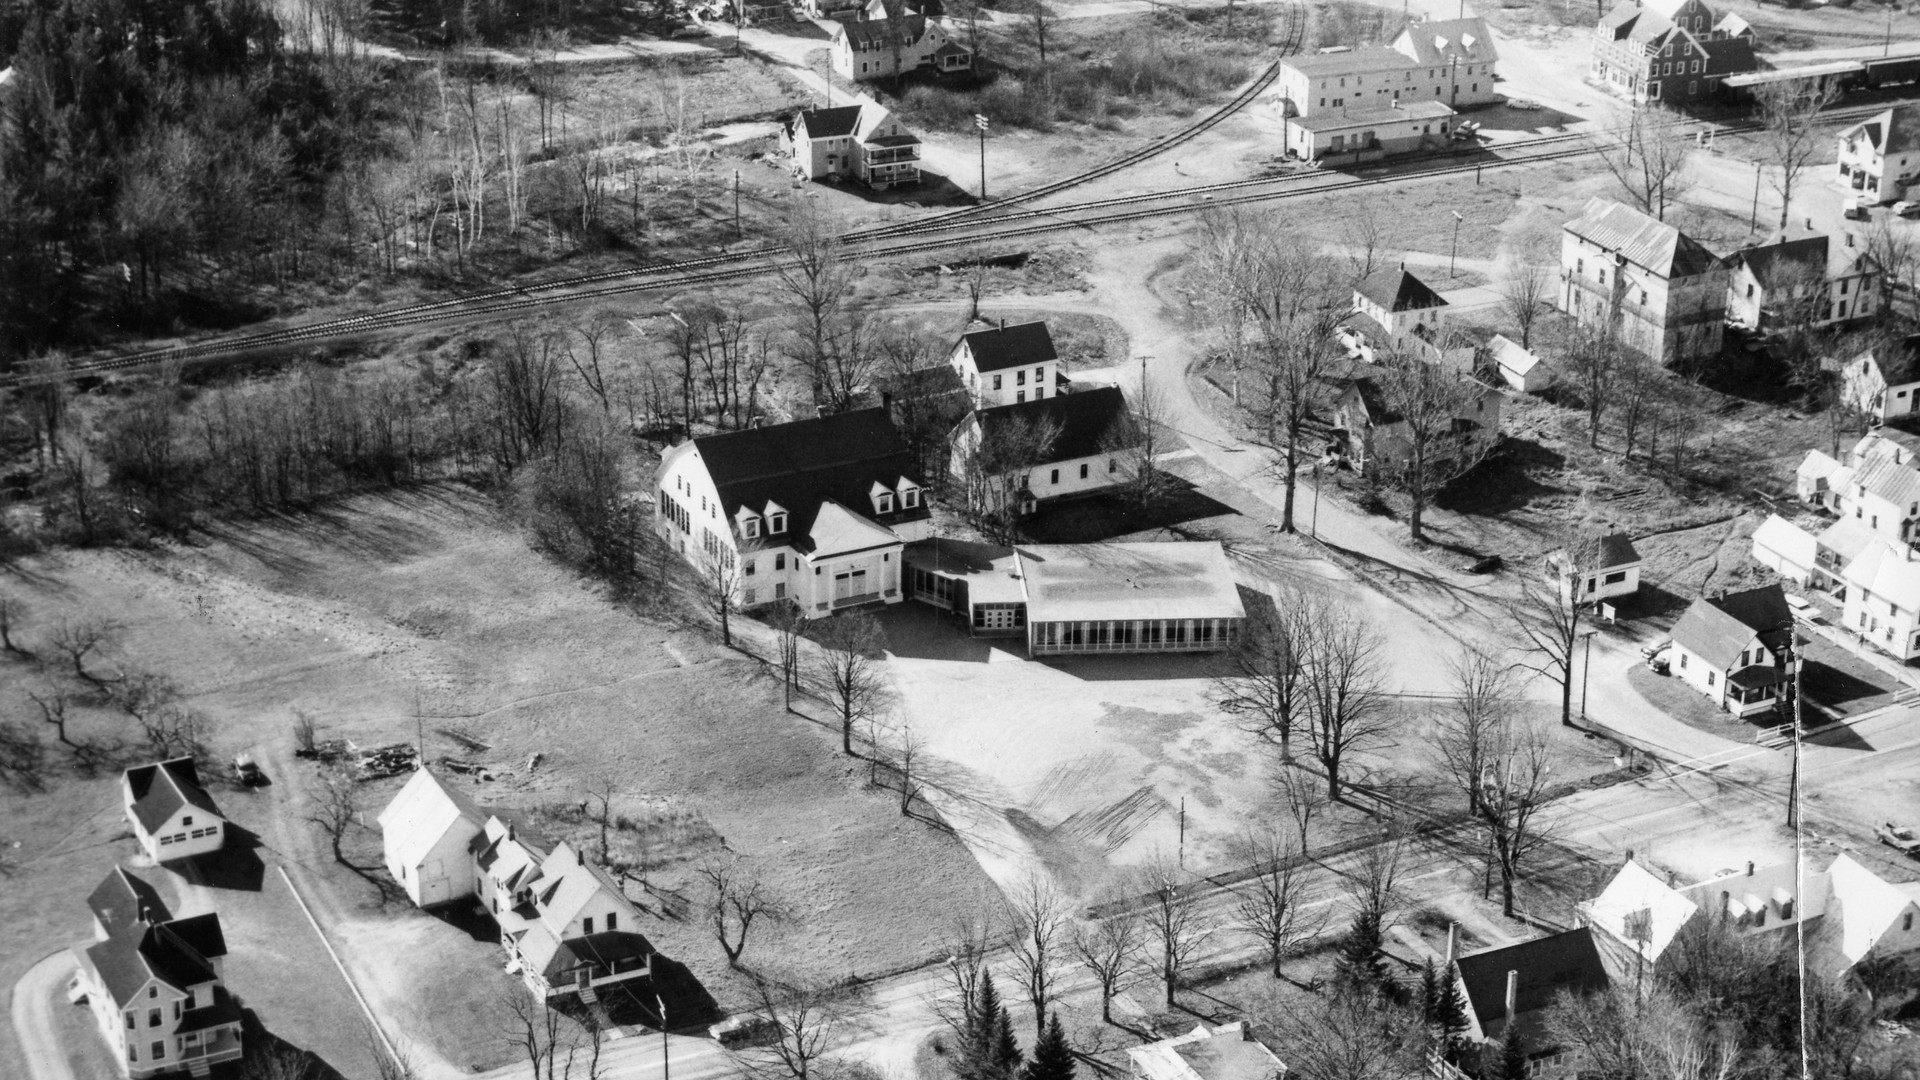 Village area - 1958 (about) Perkins House, school, church